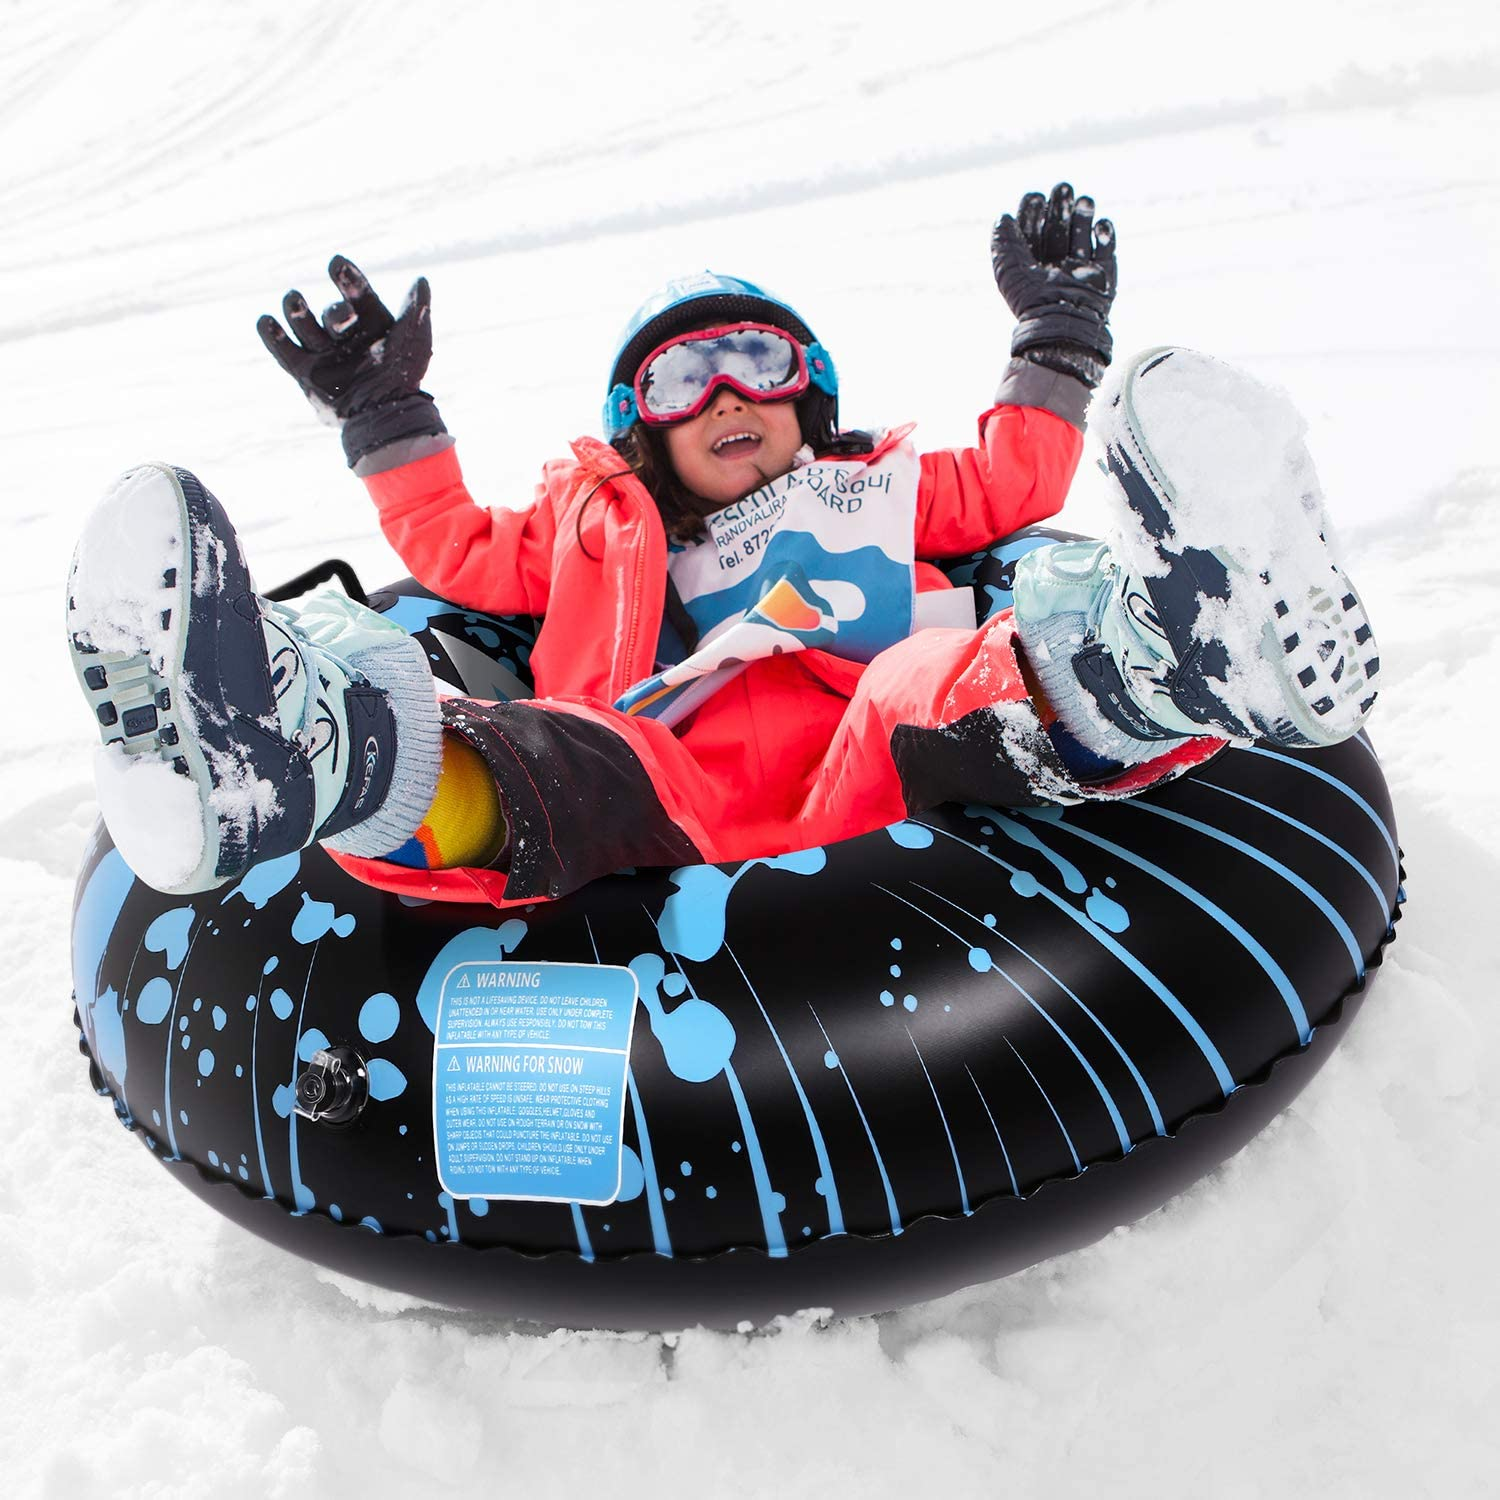 Heavy Duty Snow Tube for Adults 47 Inch Inflatable Snow Sled and Snow Toys for Kids Brace Master Snow Tube 0.6mm Thickness Material Snow Sledding